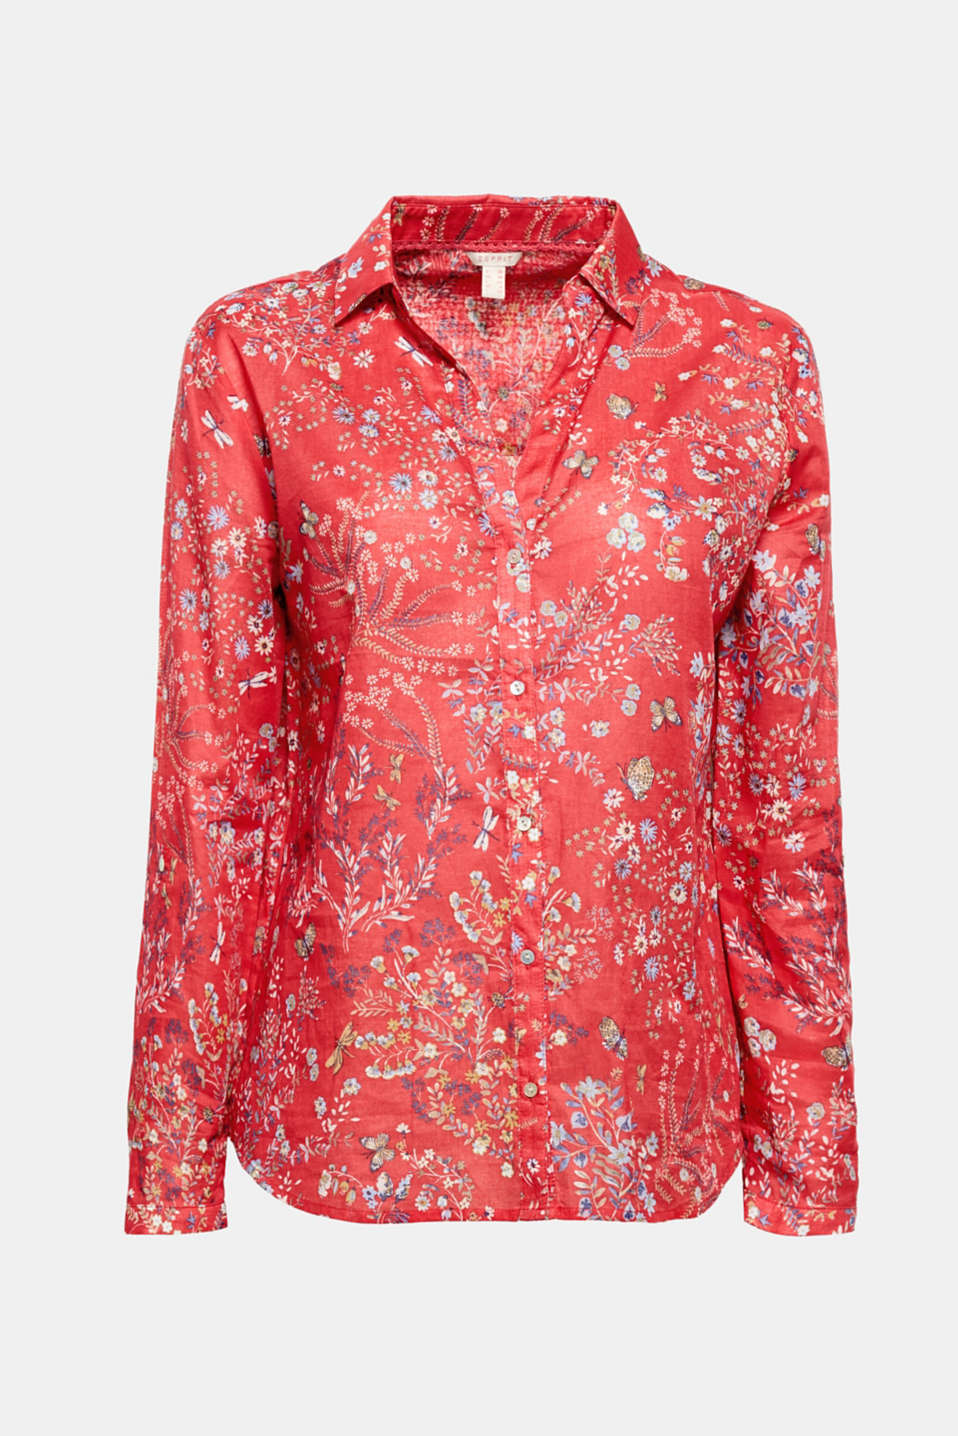 Easy to wear: The modern floral print gives this shirt blouse made of pure cotton a fresh look.